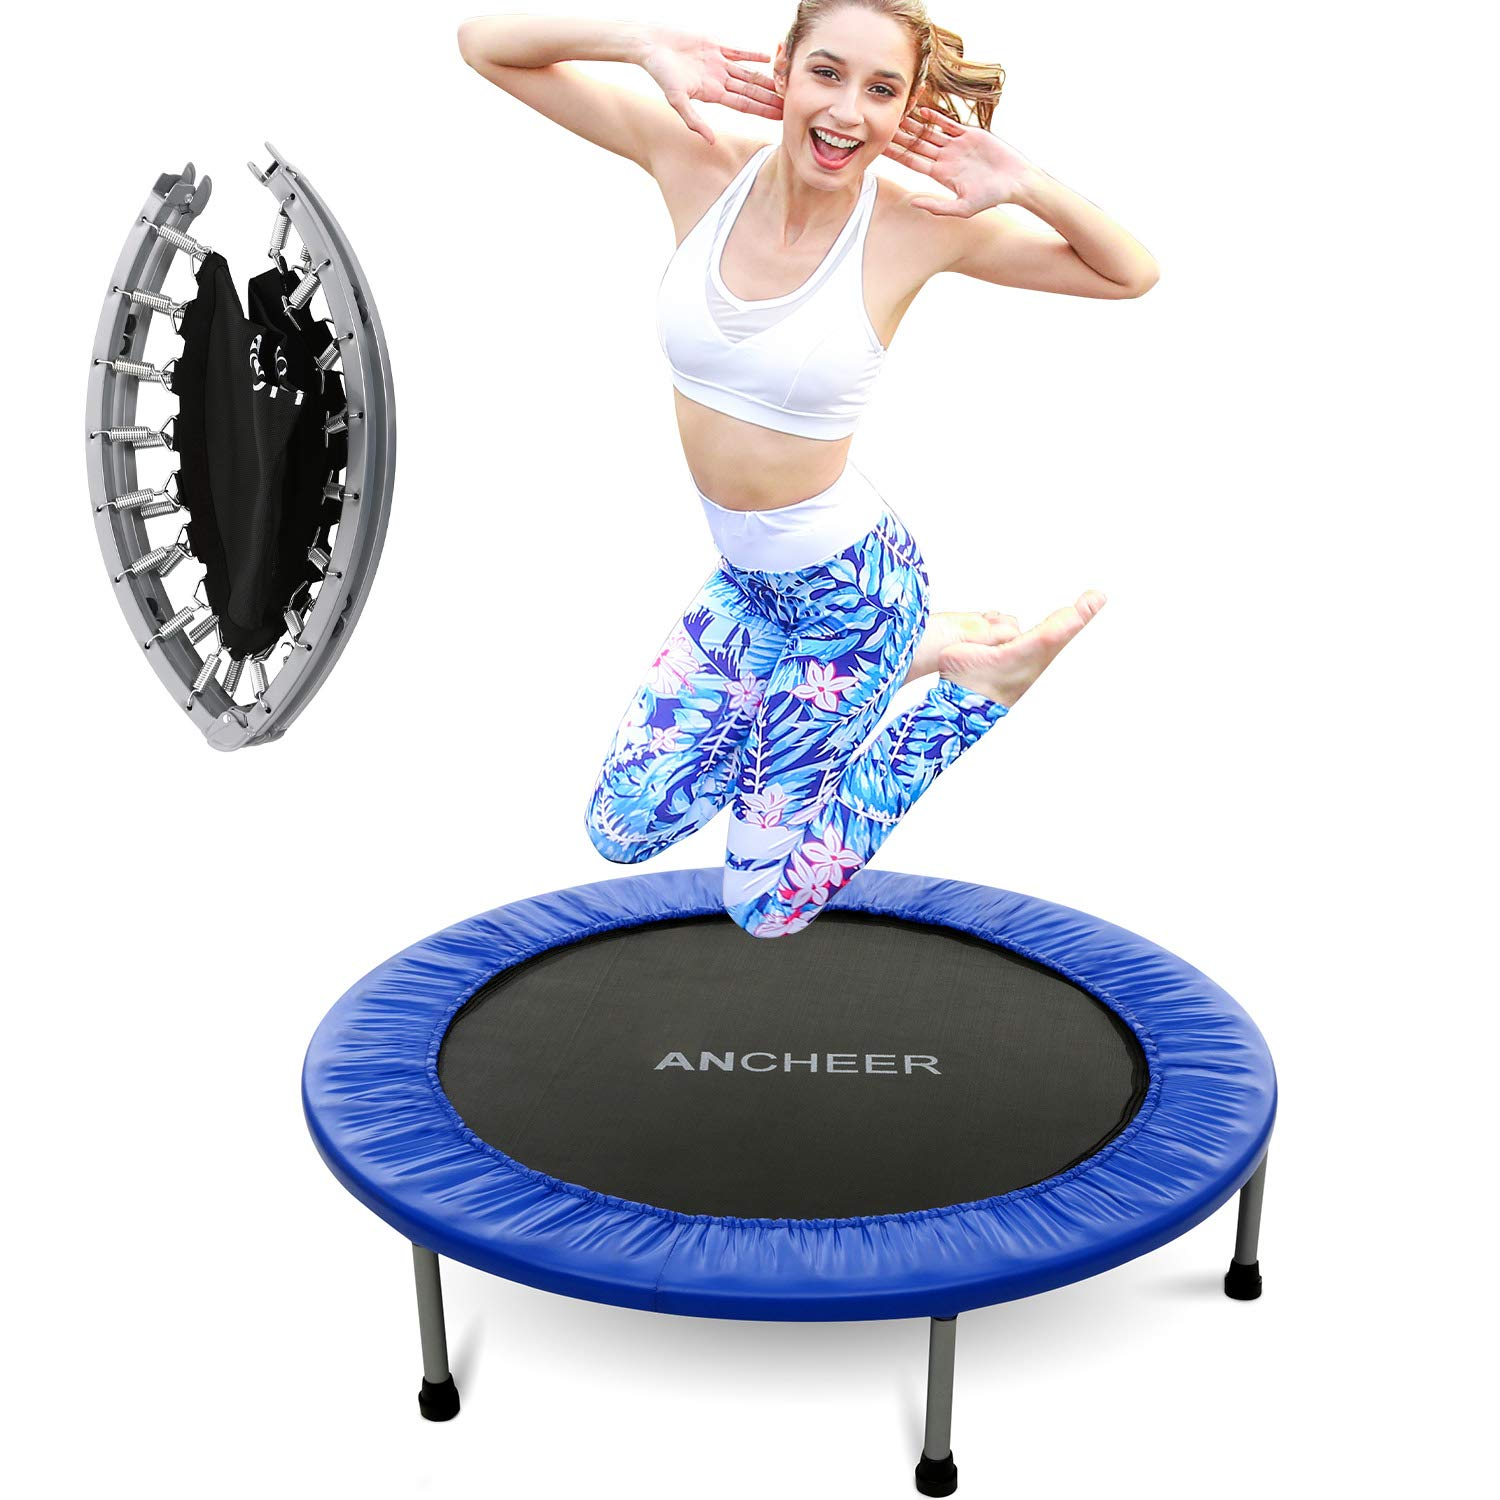 ANCHEER Mini Trampoline with Safety Pad (Blue, 40inch-Not Folding) by ANCHEER (Image #1)